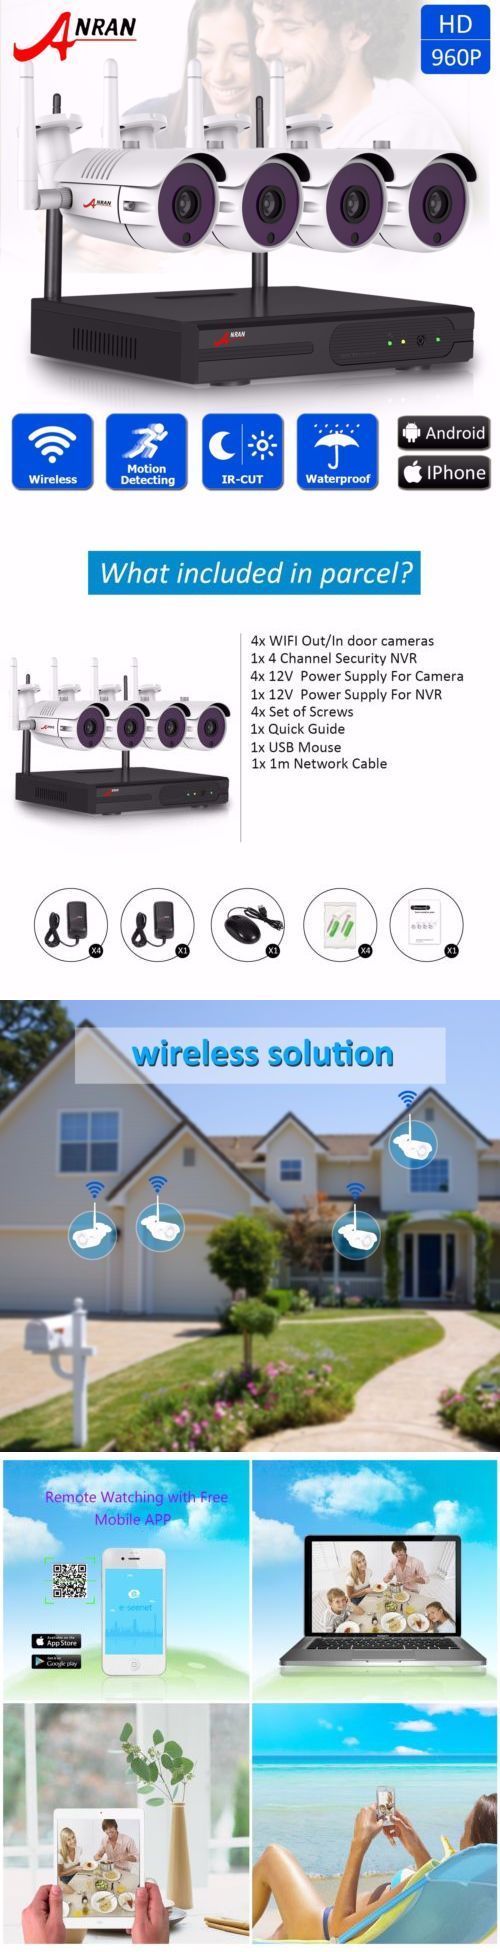 Security Cameras: Anran 4Ch Wireless 960P Hd 1.3Mp Outdoor Wifi Home Cctv Security Camera System -> BUY IT NOW ONLY: $197.99 on eBay!